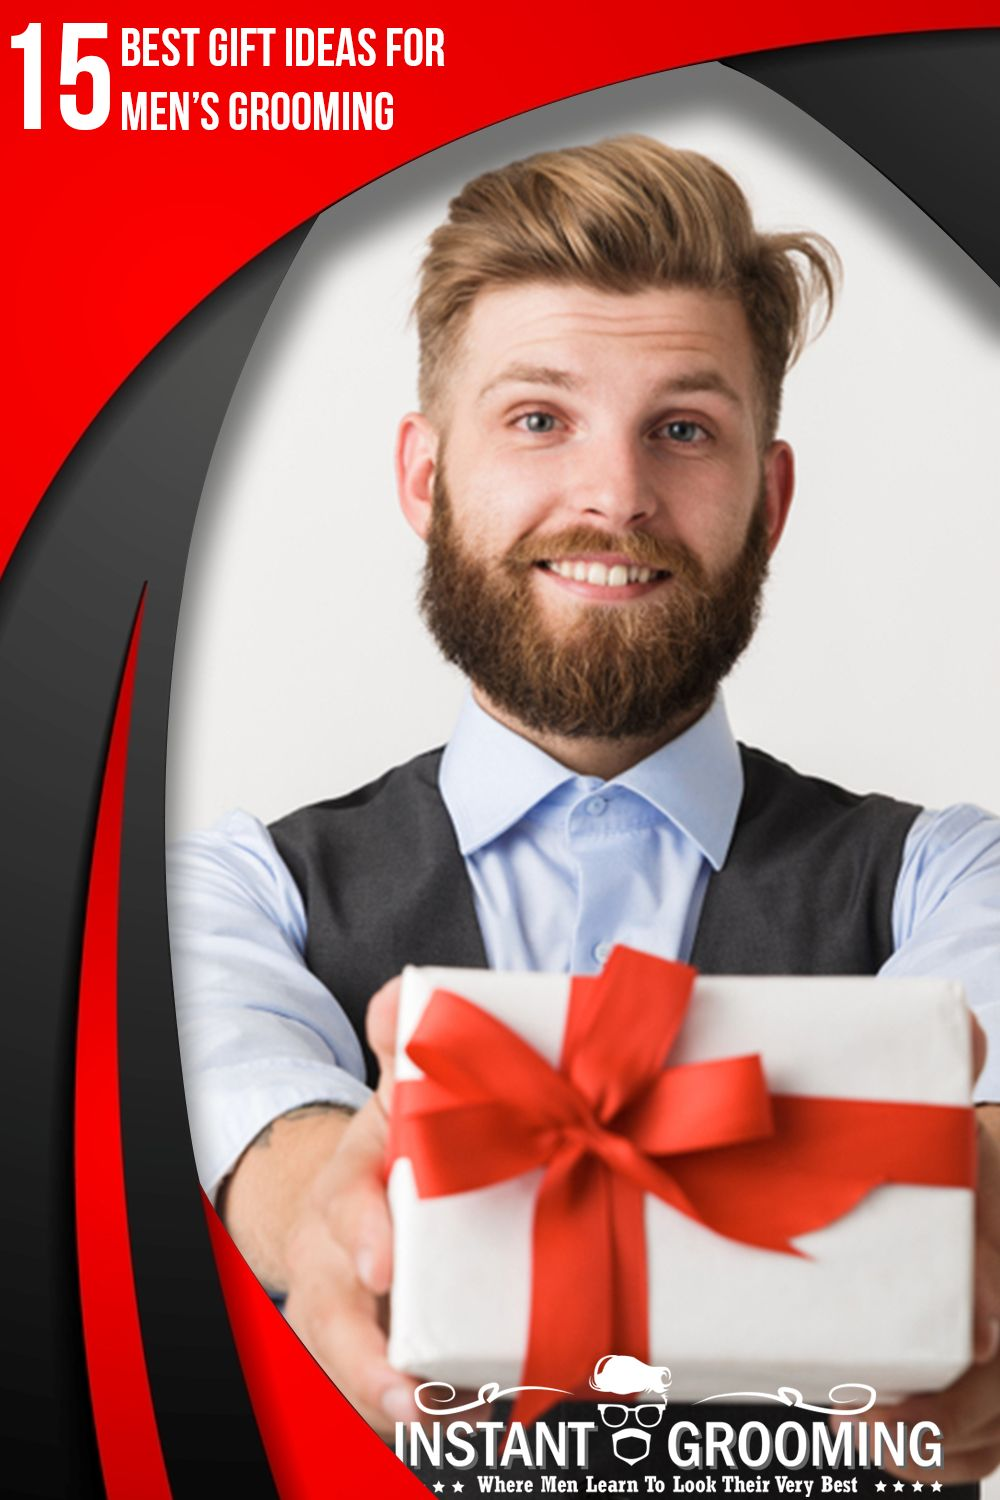 Presents For Bald Men : presents, Ideas, Men's, Grooming, Instant, Gifts,